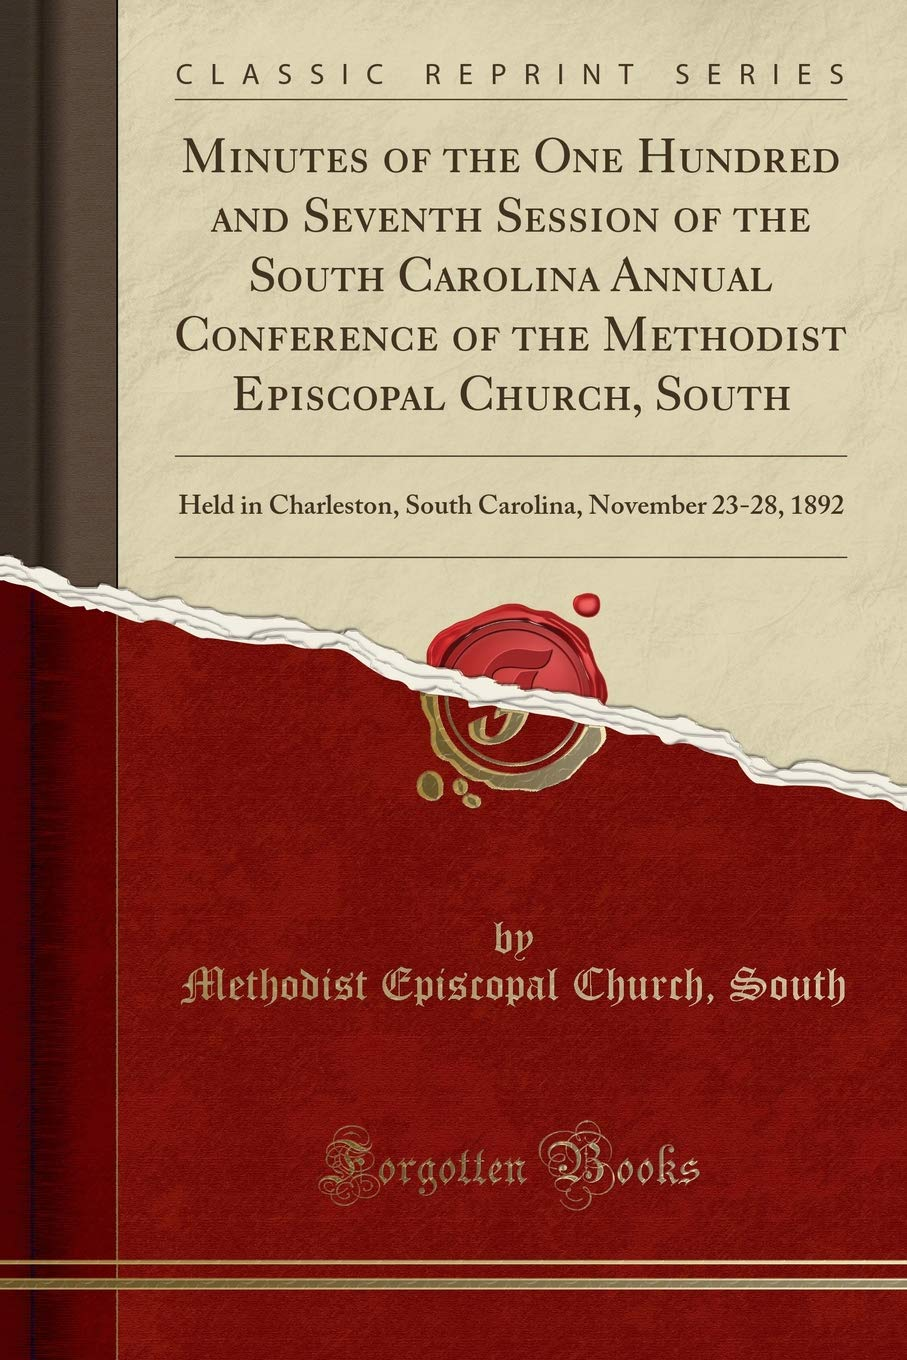 Download Minutes of the One Hundred and Seventh Session of the South Carolina Annual Conference of the Methodist Episcopal Church, South: Held in Charleston, ... November 23-28, 1892 (Classic Reprint) pdf epub